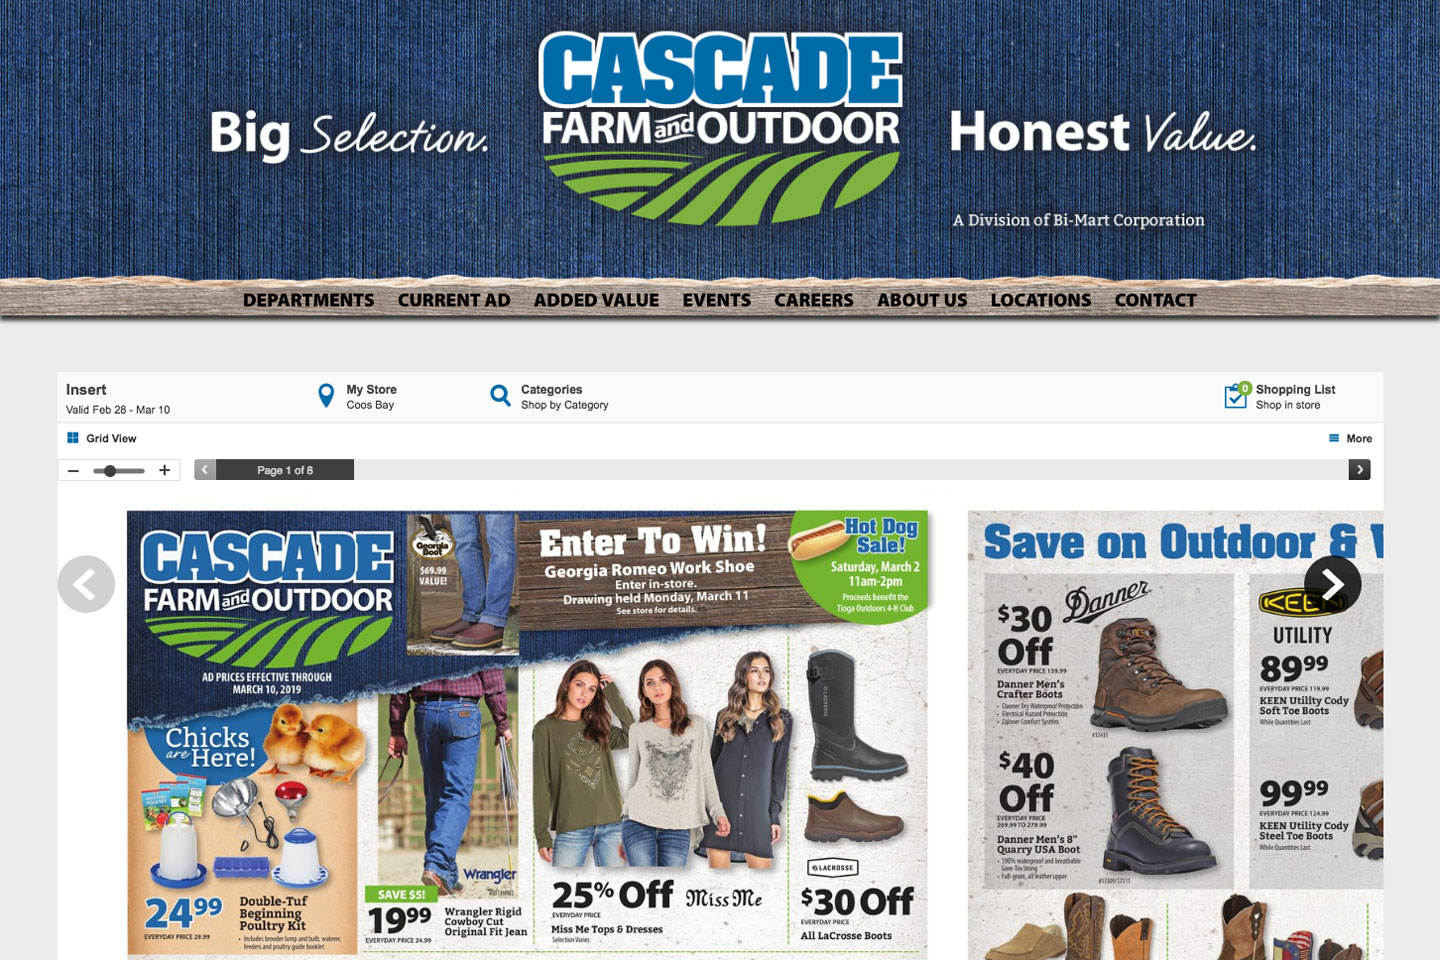 We build full websites for clients big and small, including the regional retailer Cascade Farm and Outdoor